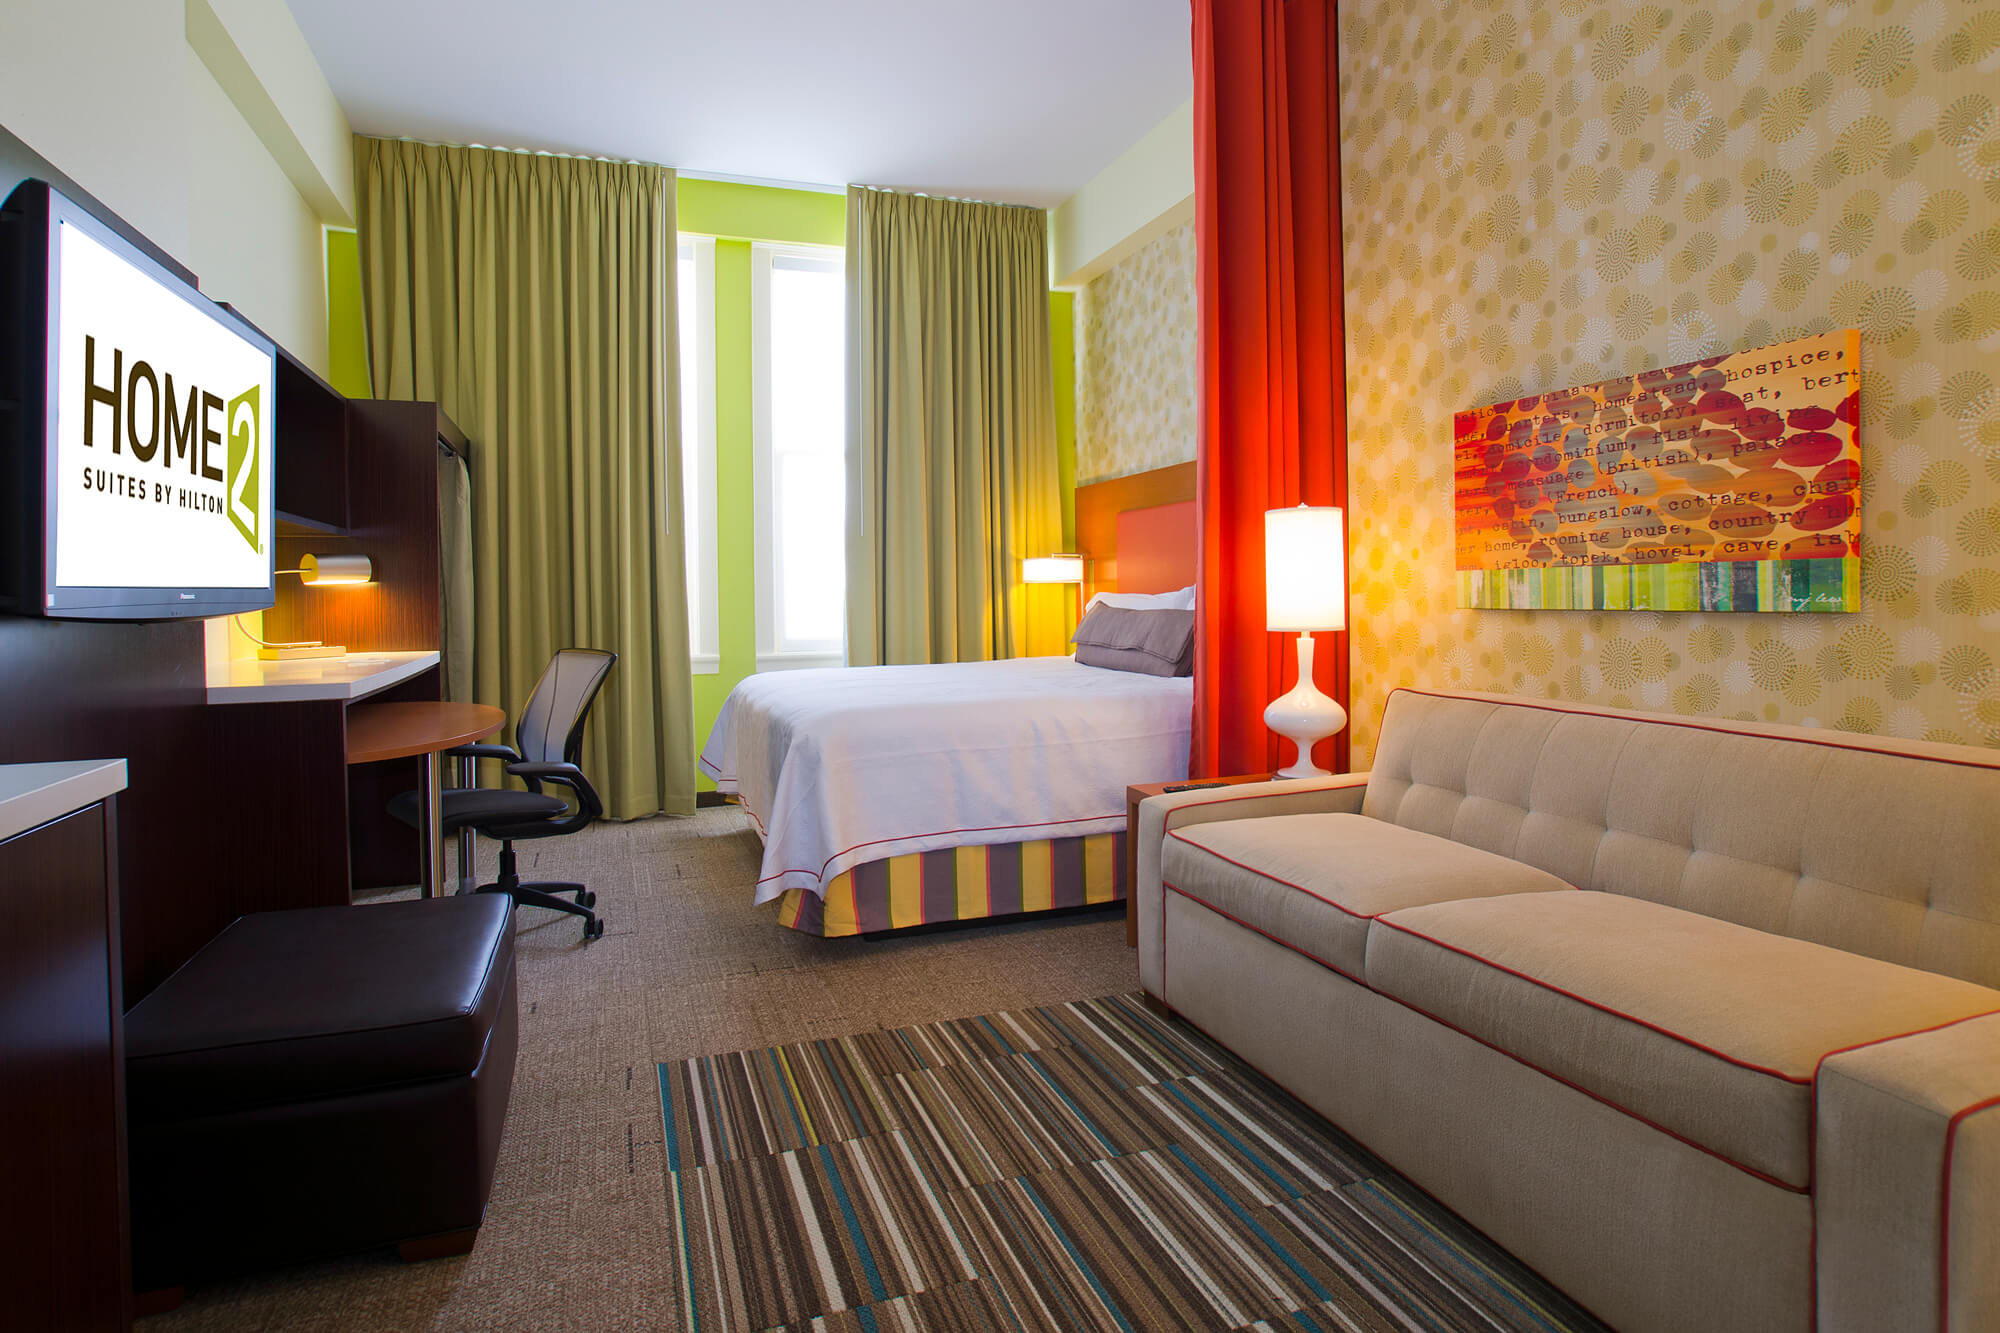 Home2 Suites by Hilton Owings Mills